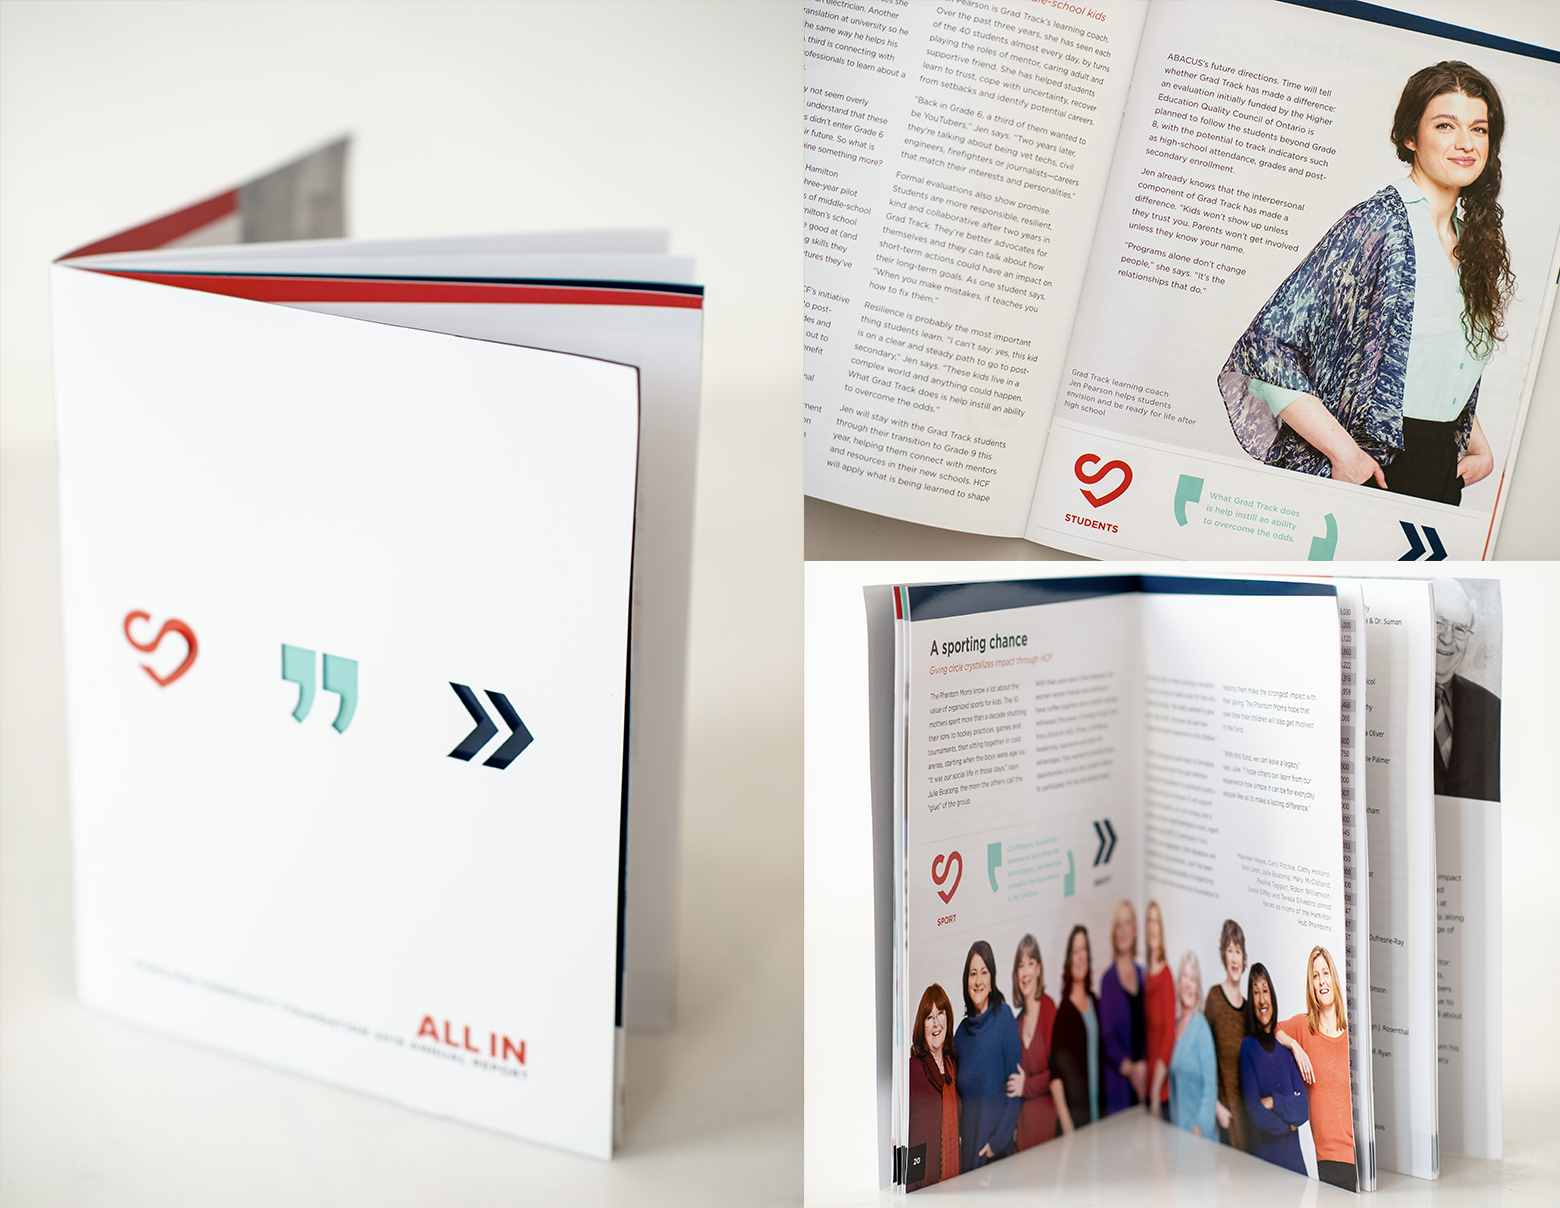 """HCF - """"UR came up with the theme, and its exposition through layout and design captured perfectly the essence of what we are working to help people achieve through their philanthropy: alignment between what they care about and the difference they can make.""""— Grace Diffey"""